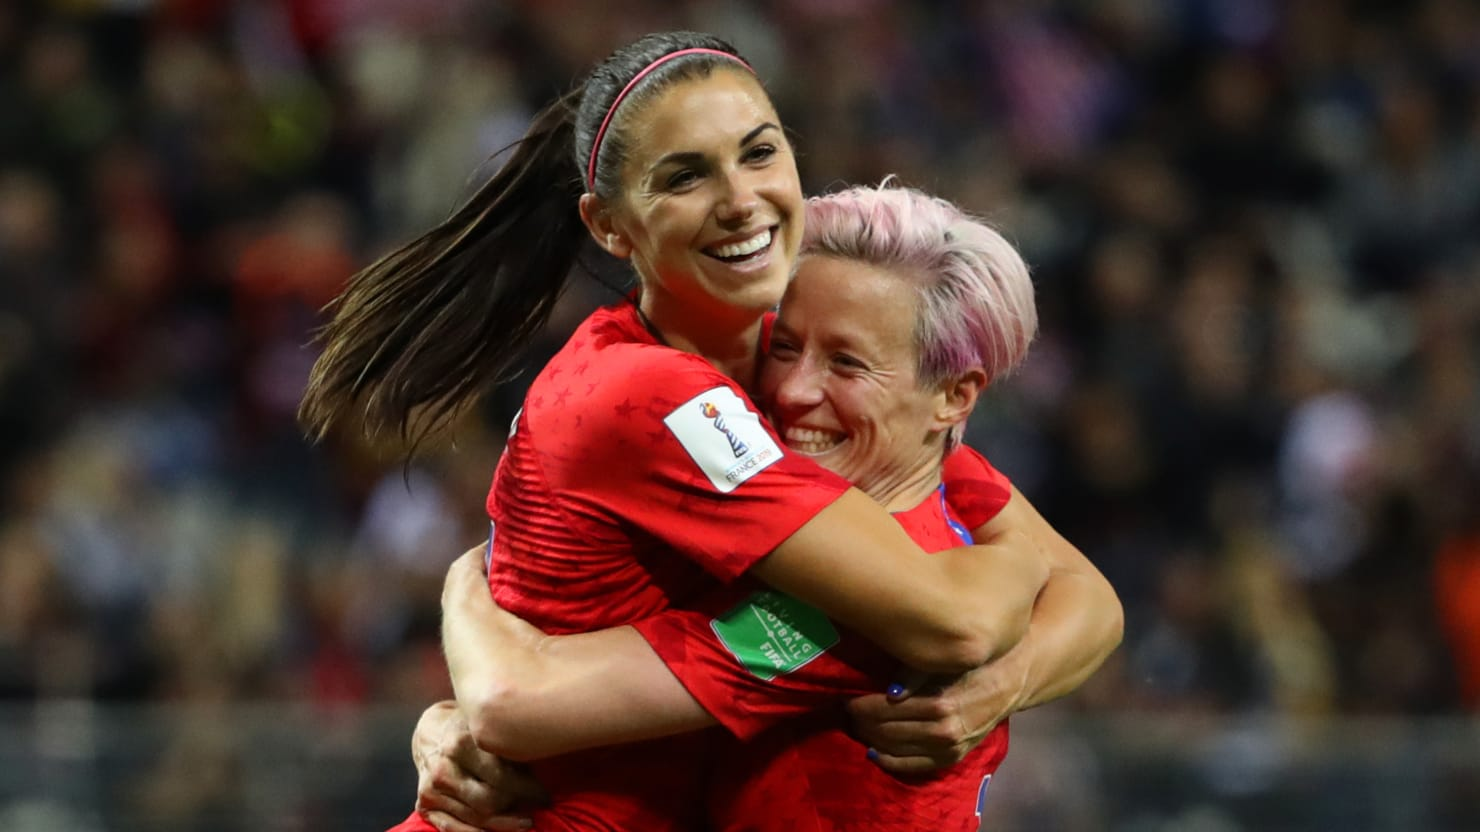 U.S. Clinched 'Biggest Victory' in FIFA Women's World Cup History